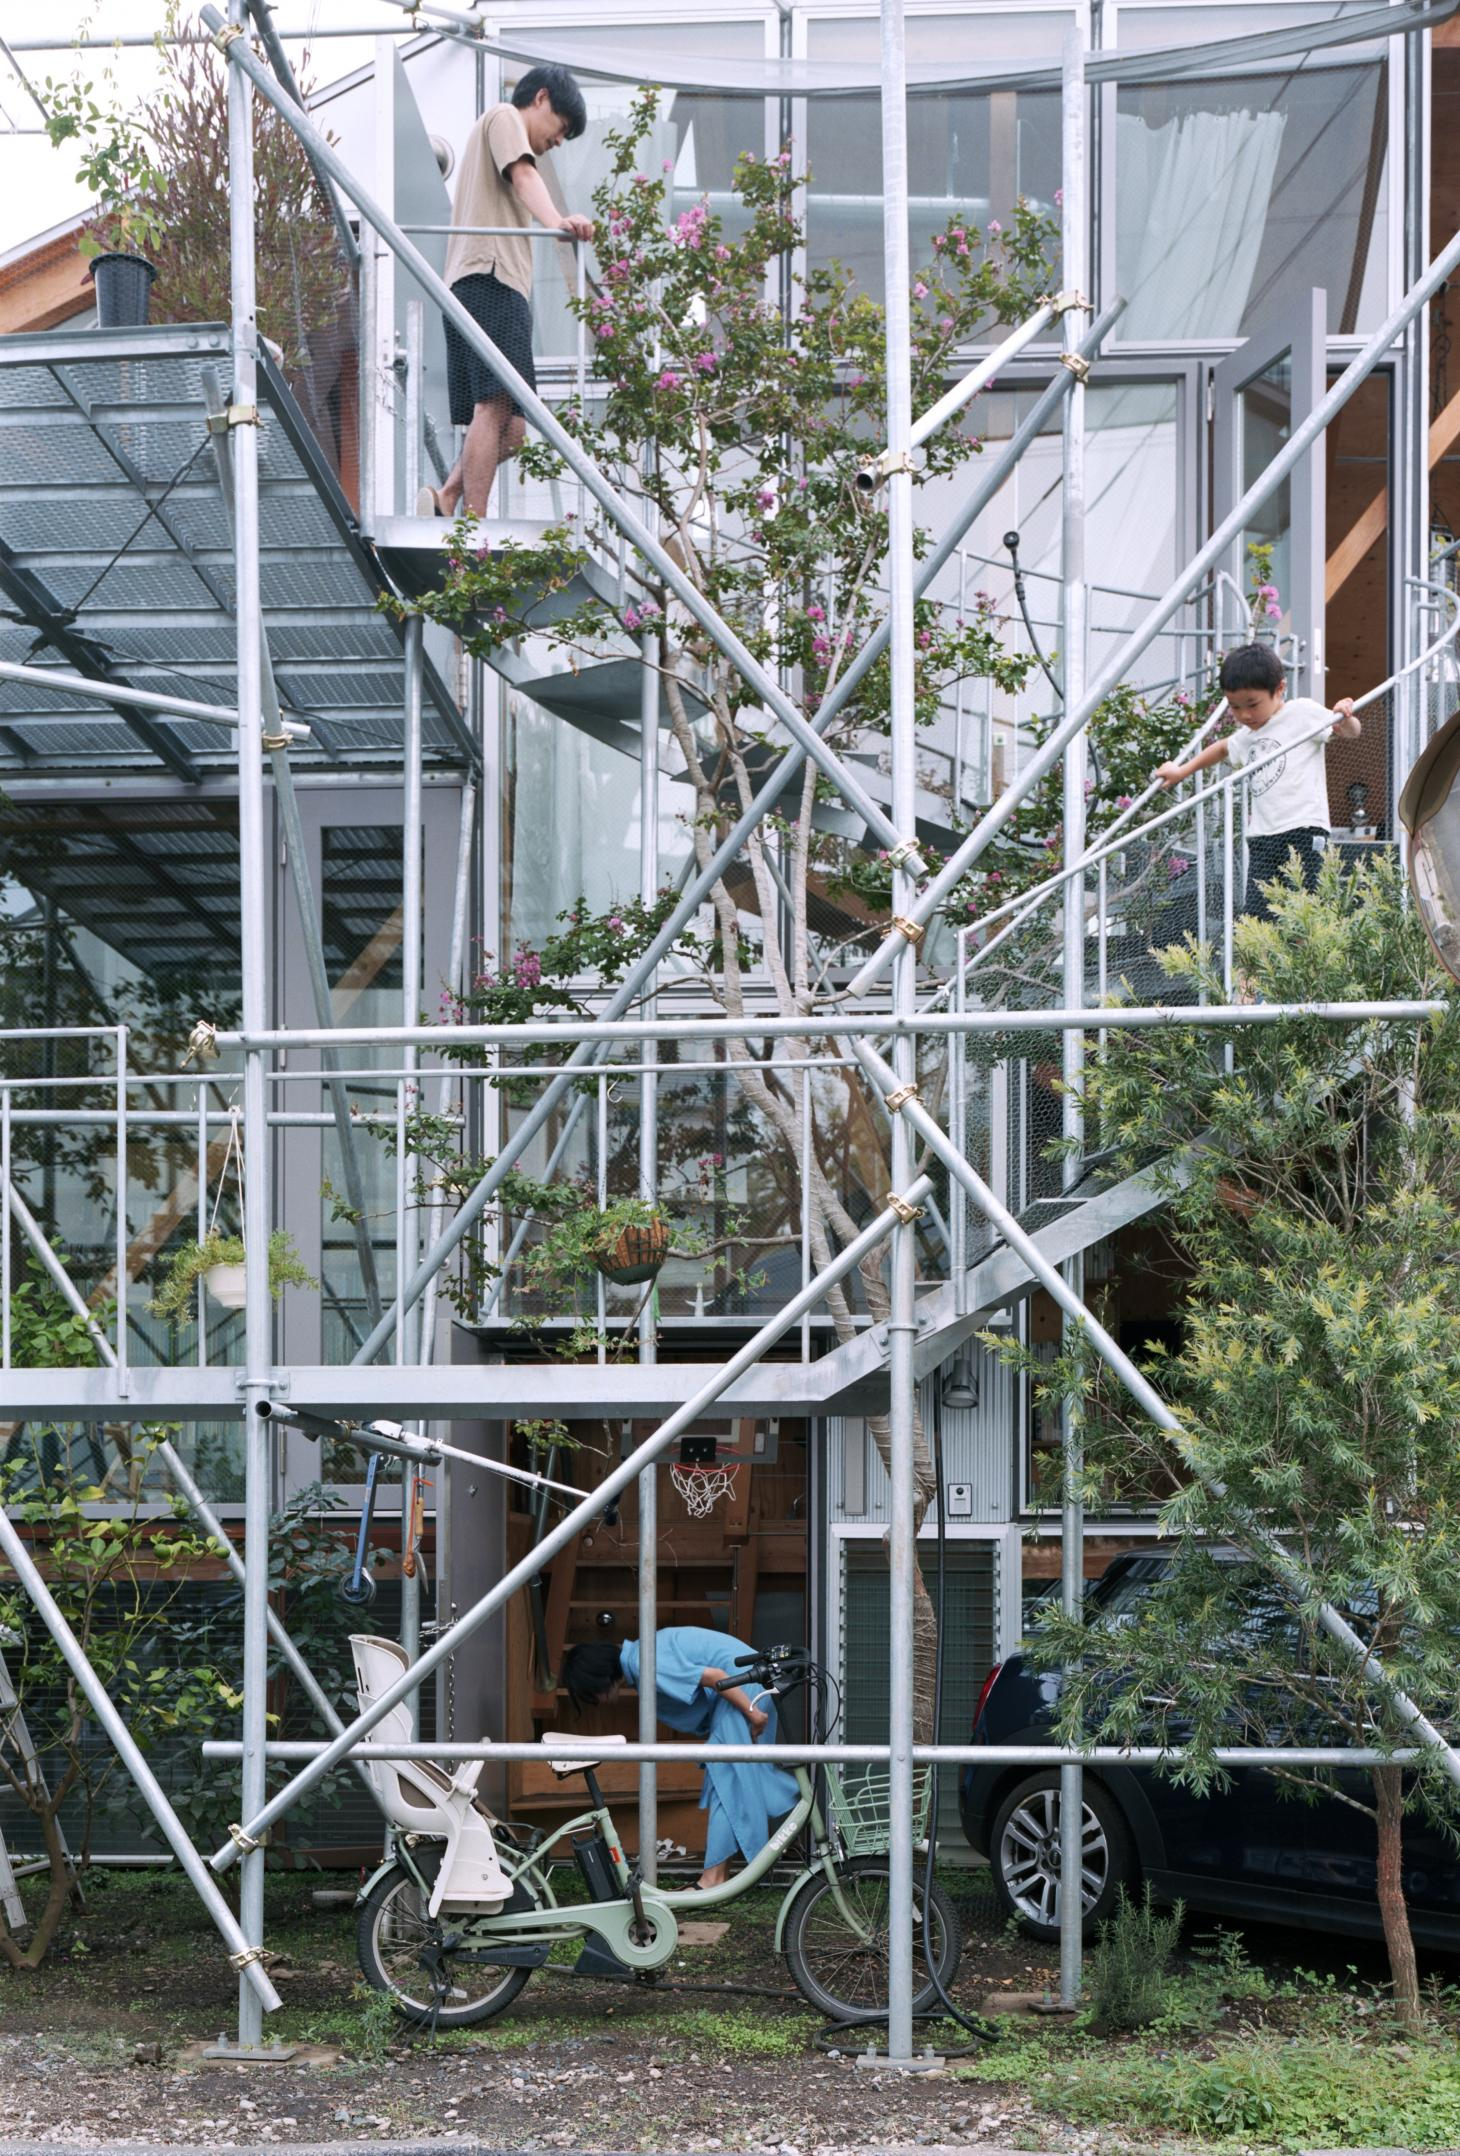 Daita20219's facade blends scaffolding-style structures, glass and planting